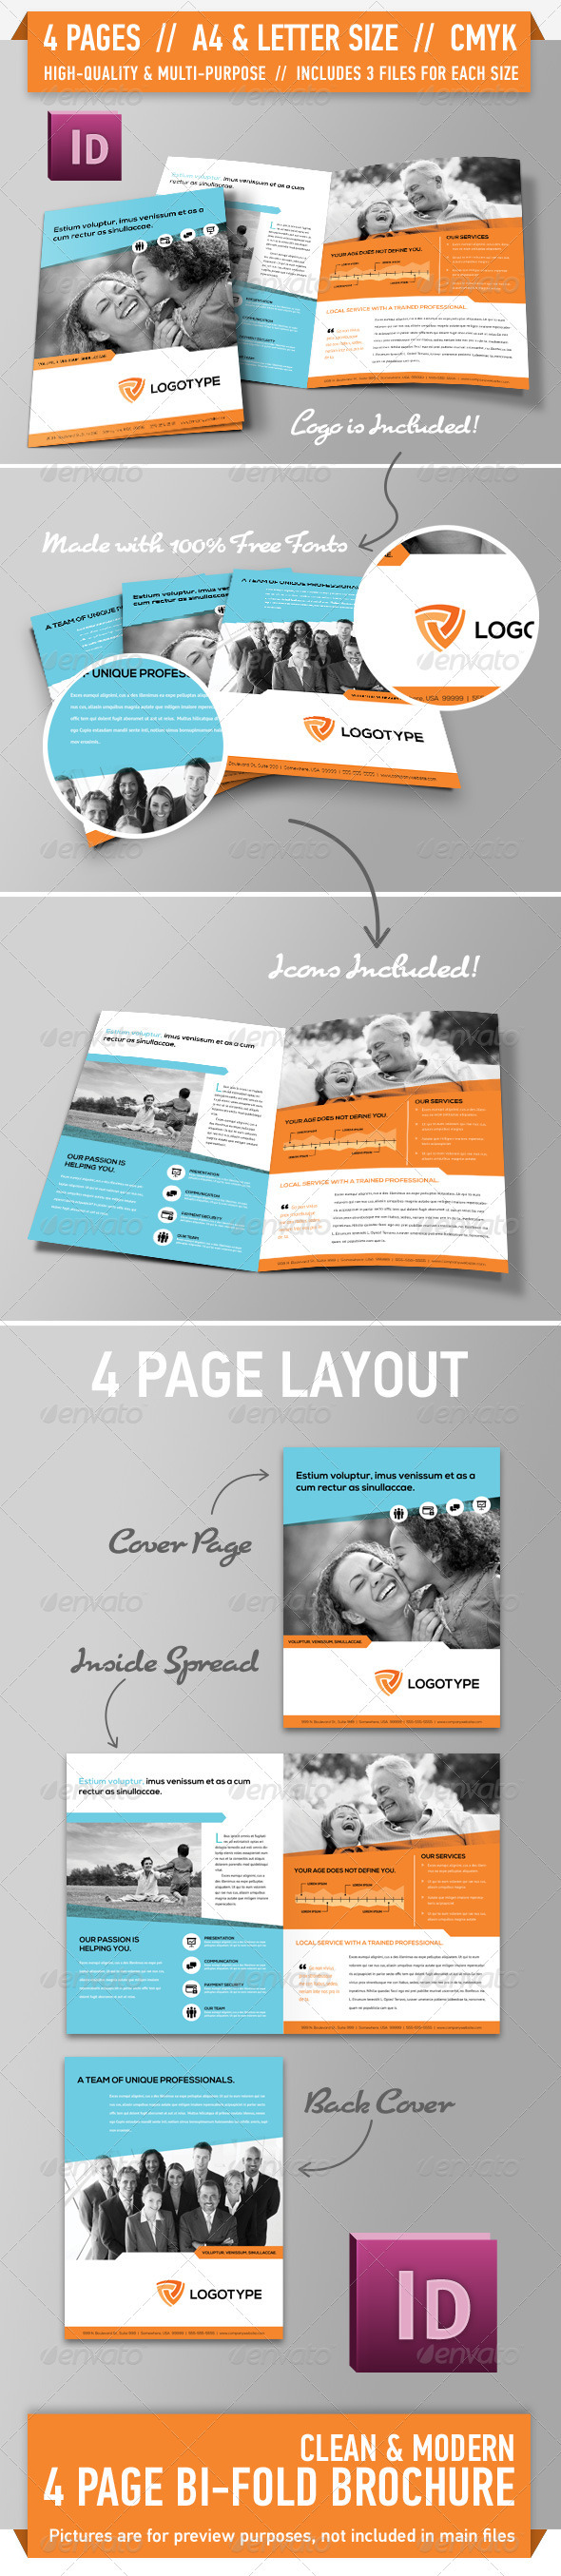 Clean Modern Bifold Brochure - Vol. 2 - Corporate Brochures